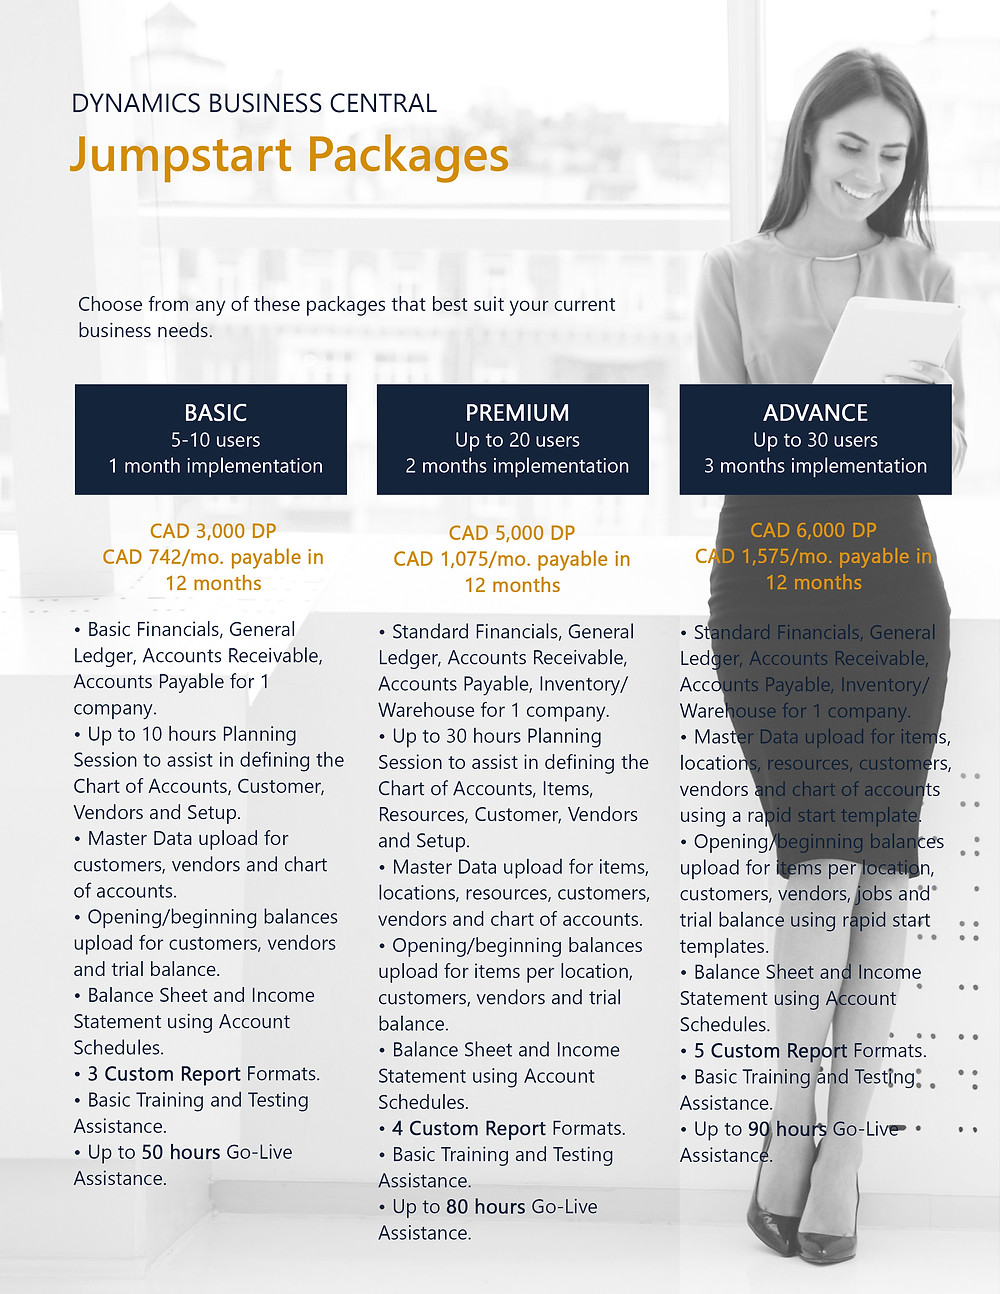 Dynamics Business Central Jumpstart Package